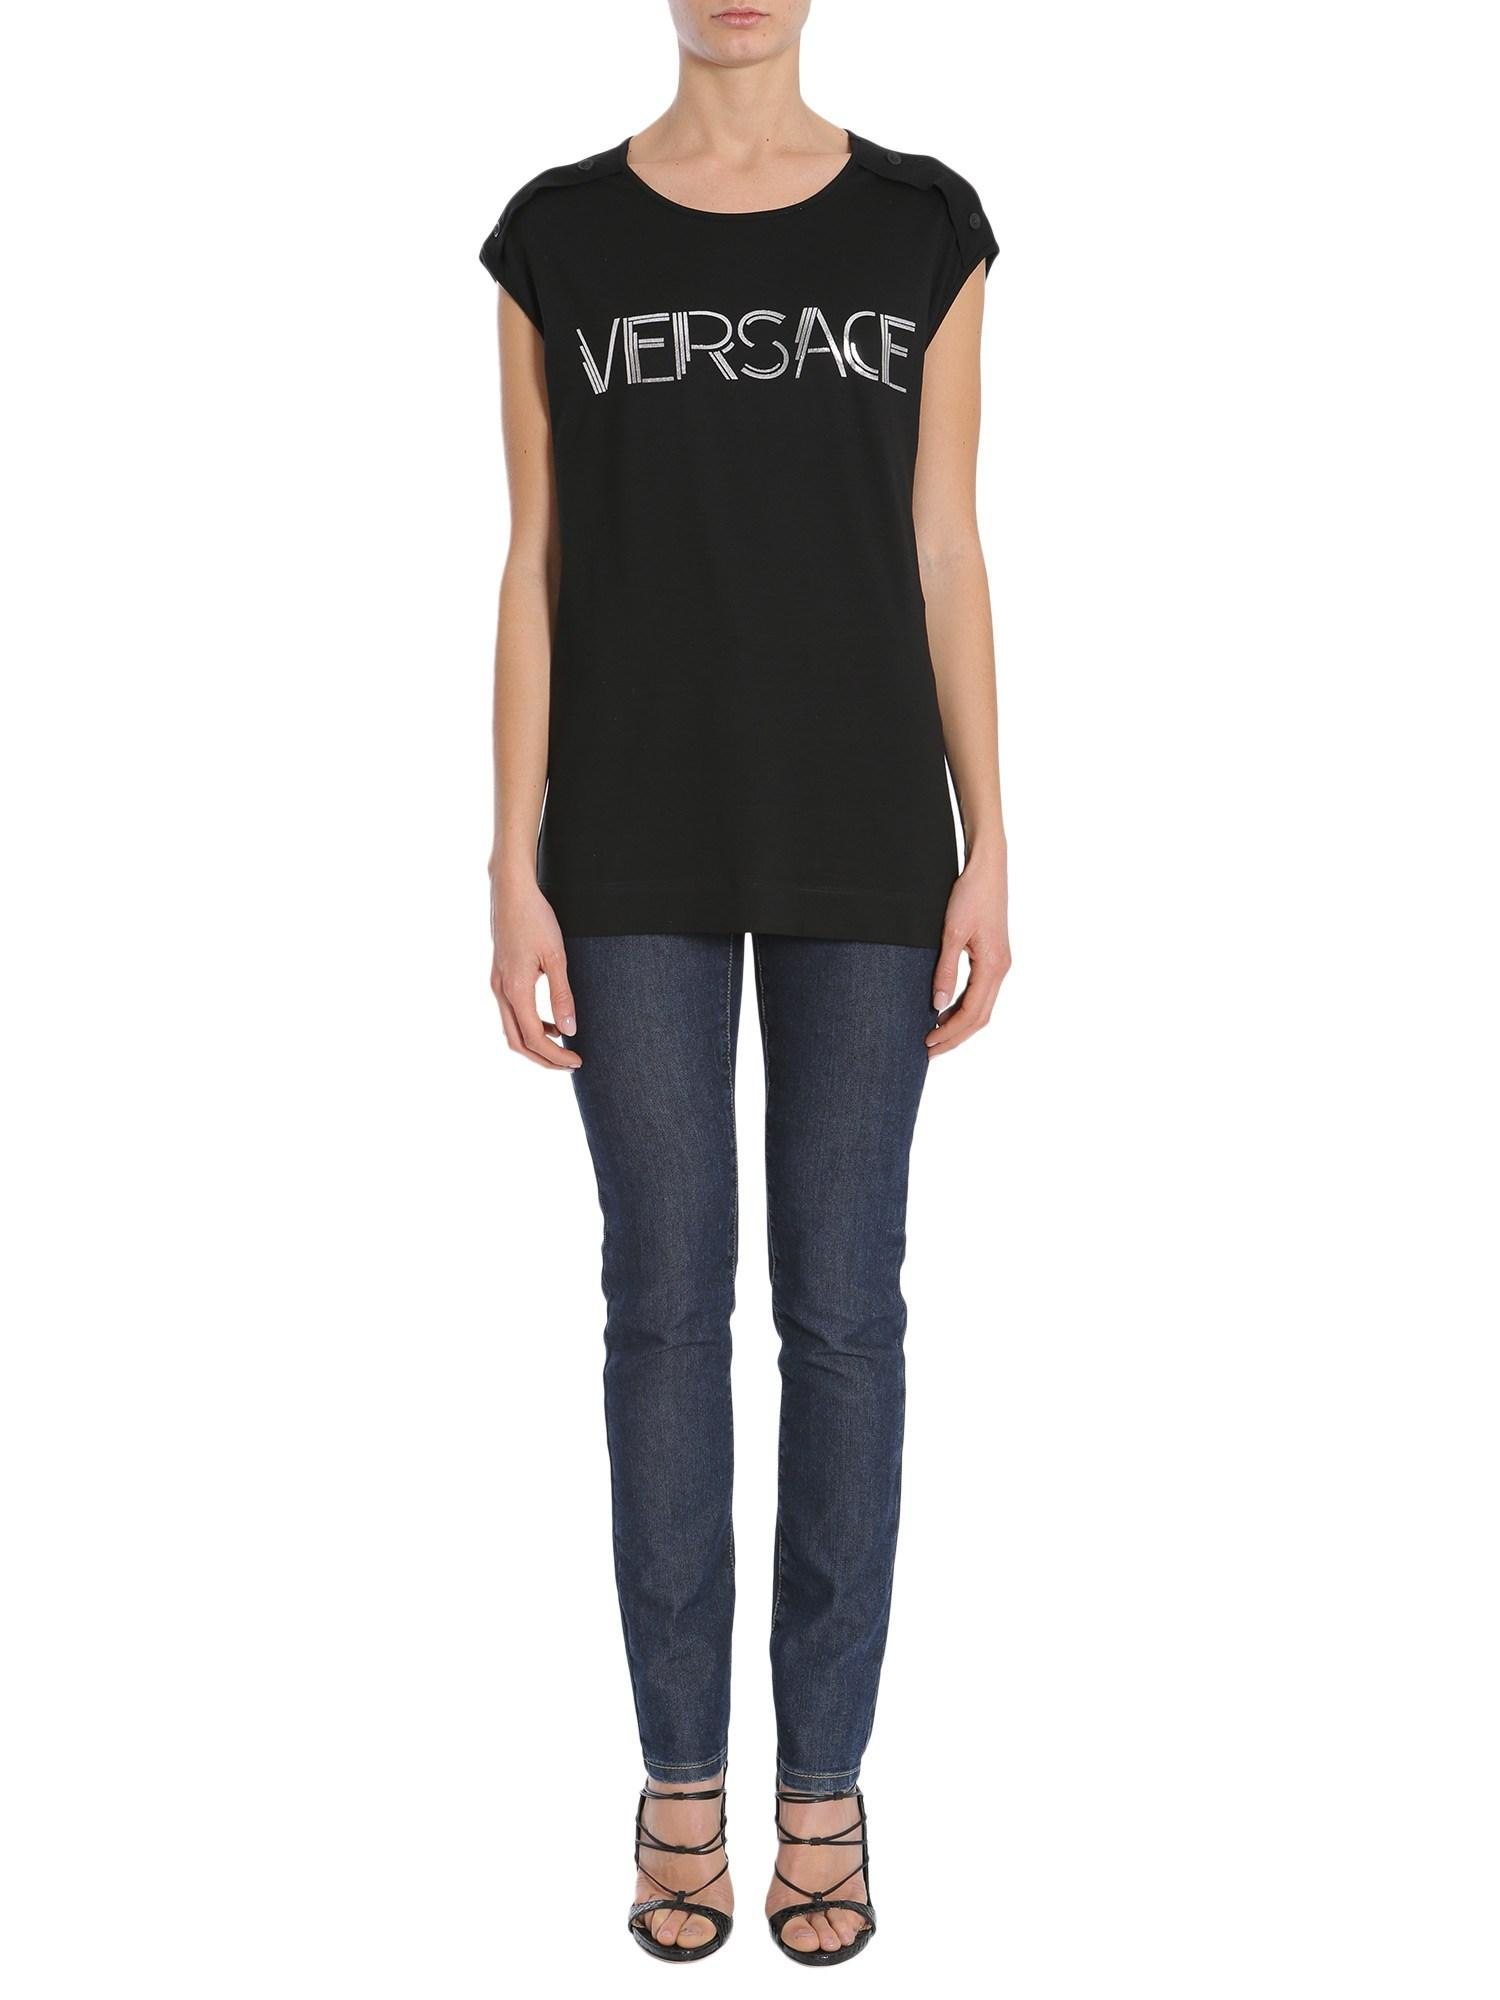 966adfb05e589 Versace Oversize Top With Logo Print in Black - Lyst